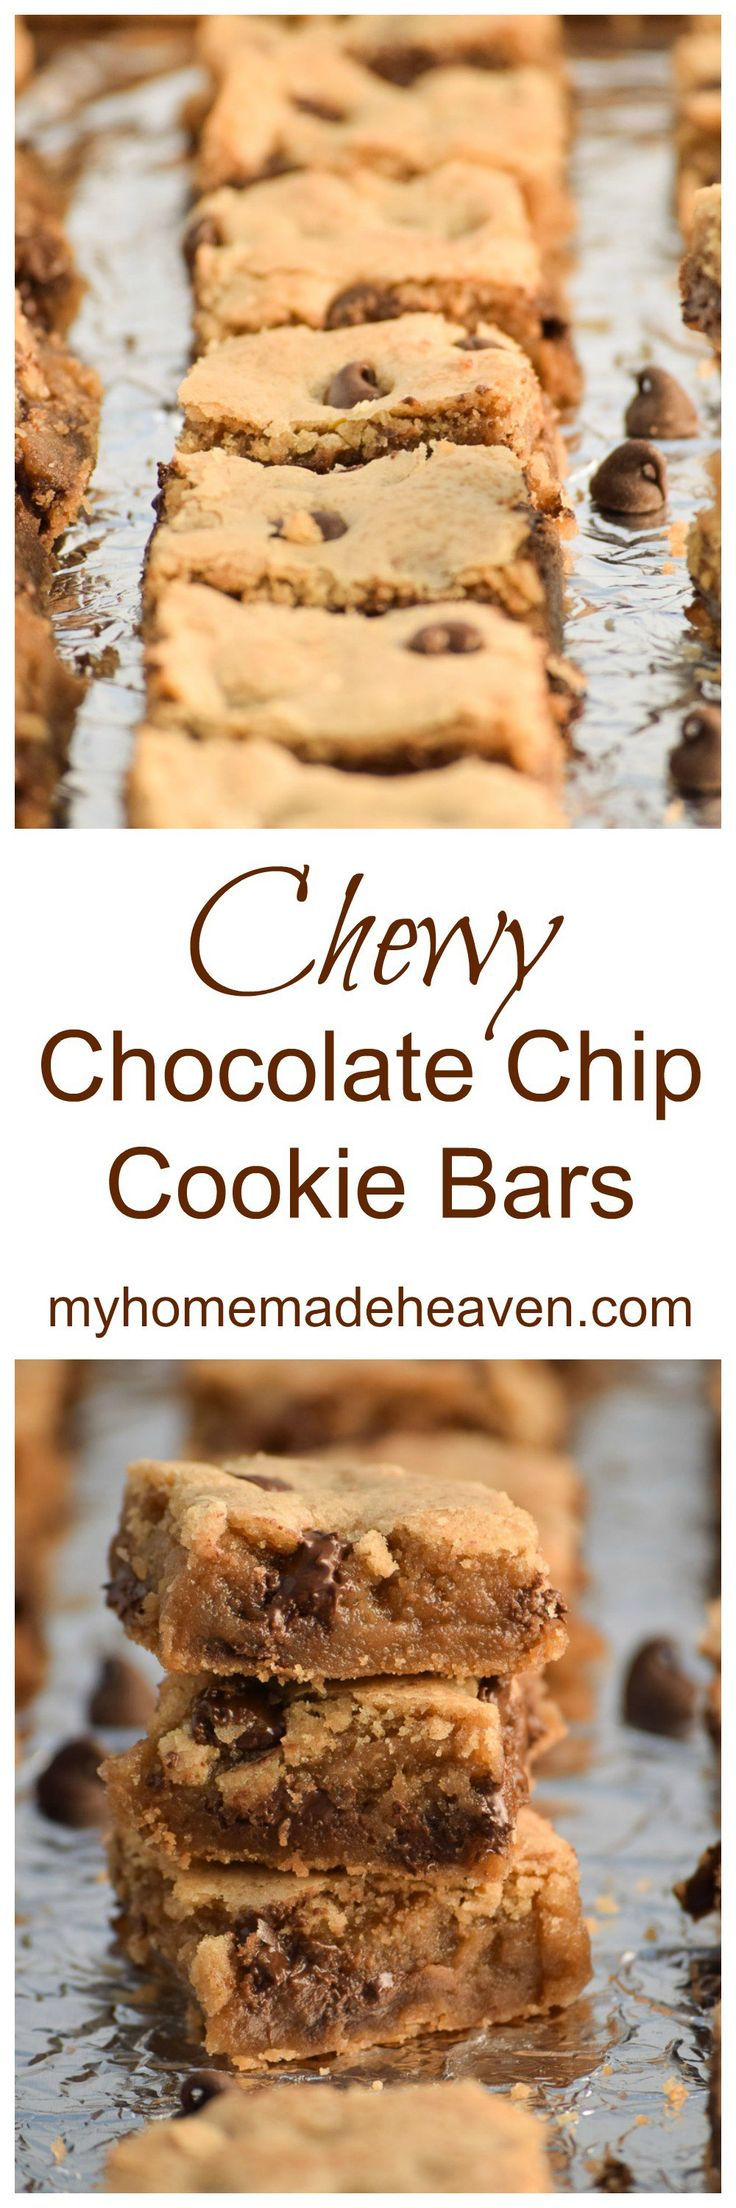 Oh my! Made these today, and they turned out perfect! So delicious and chewy!! Definitely a keeper!!